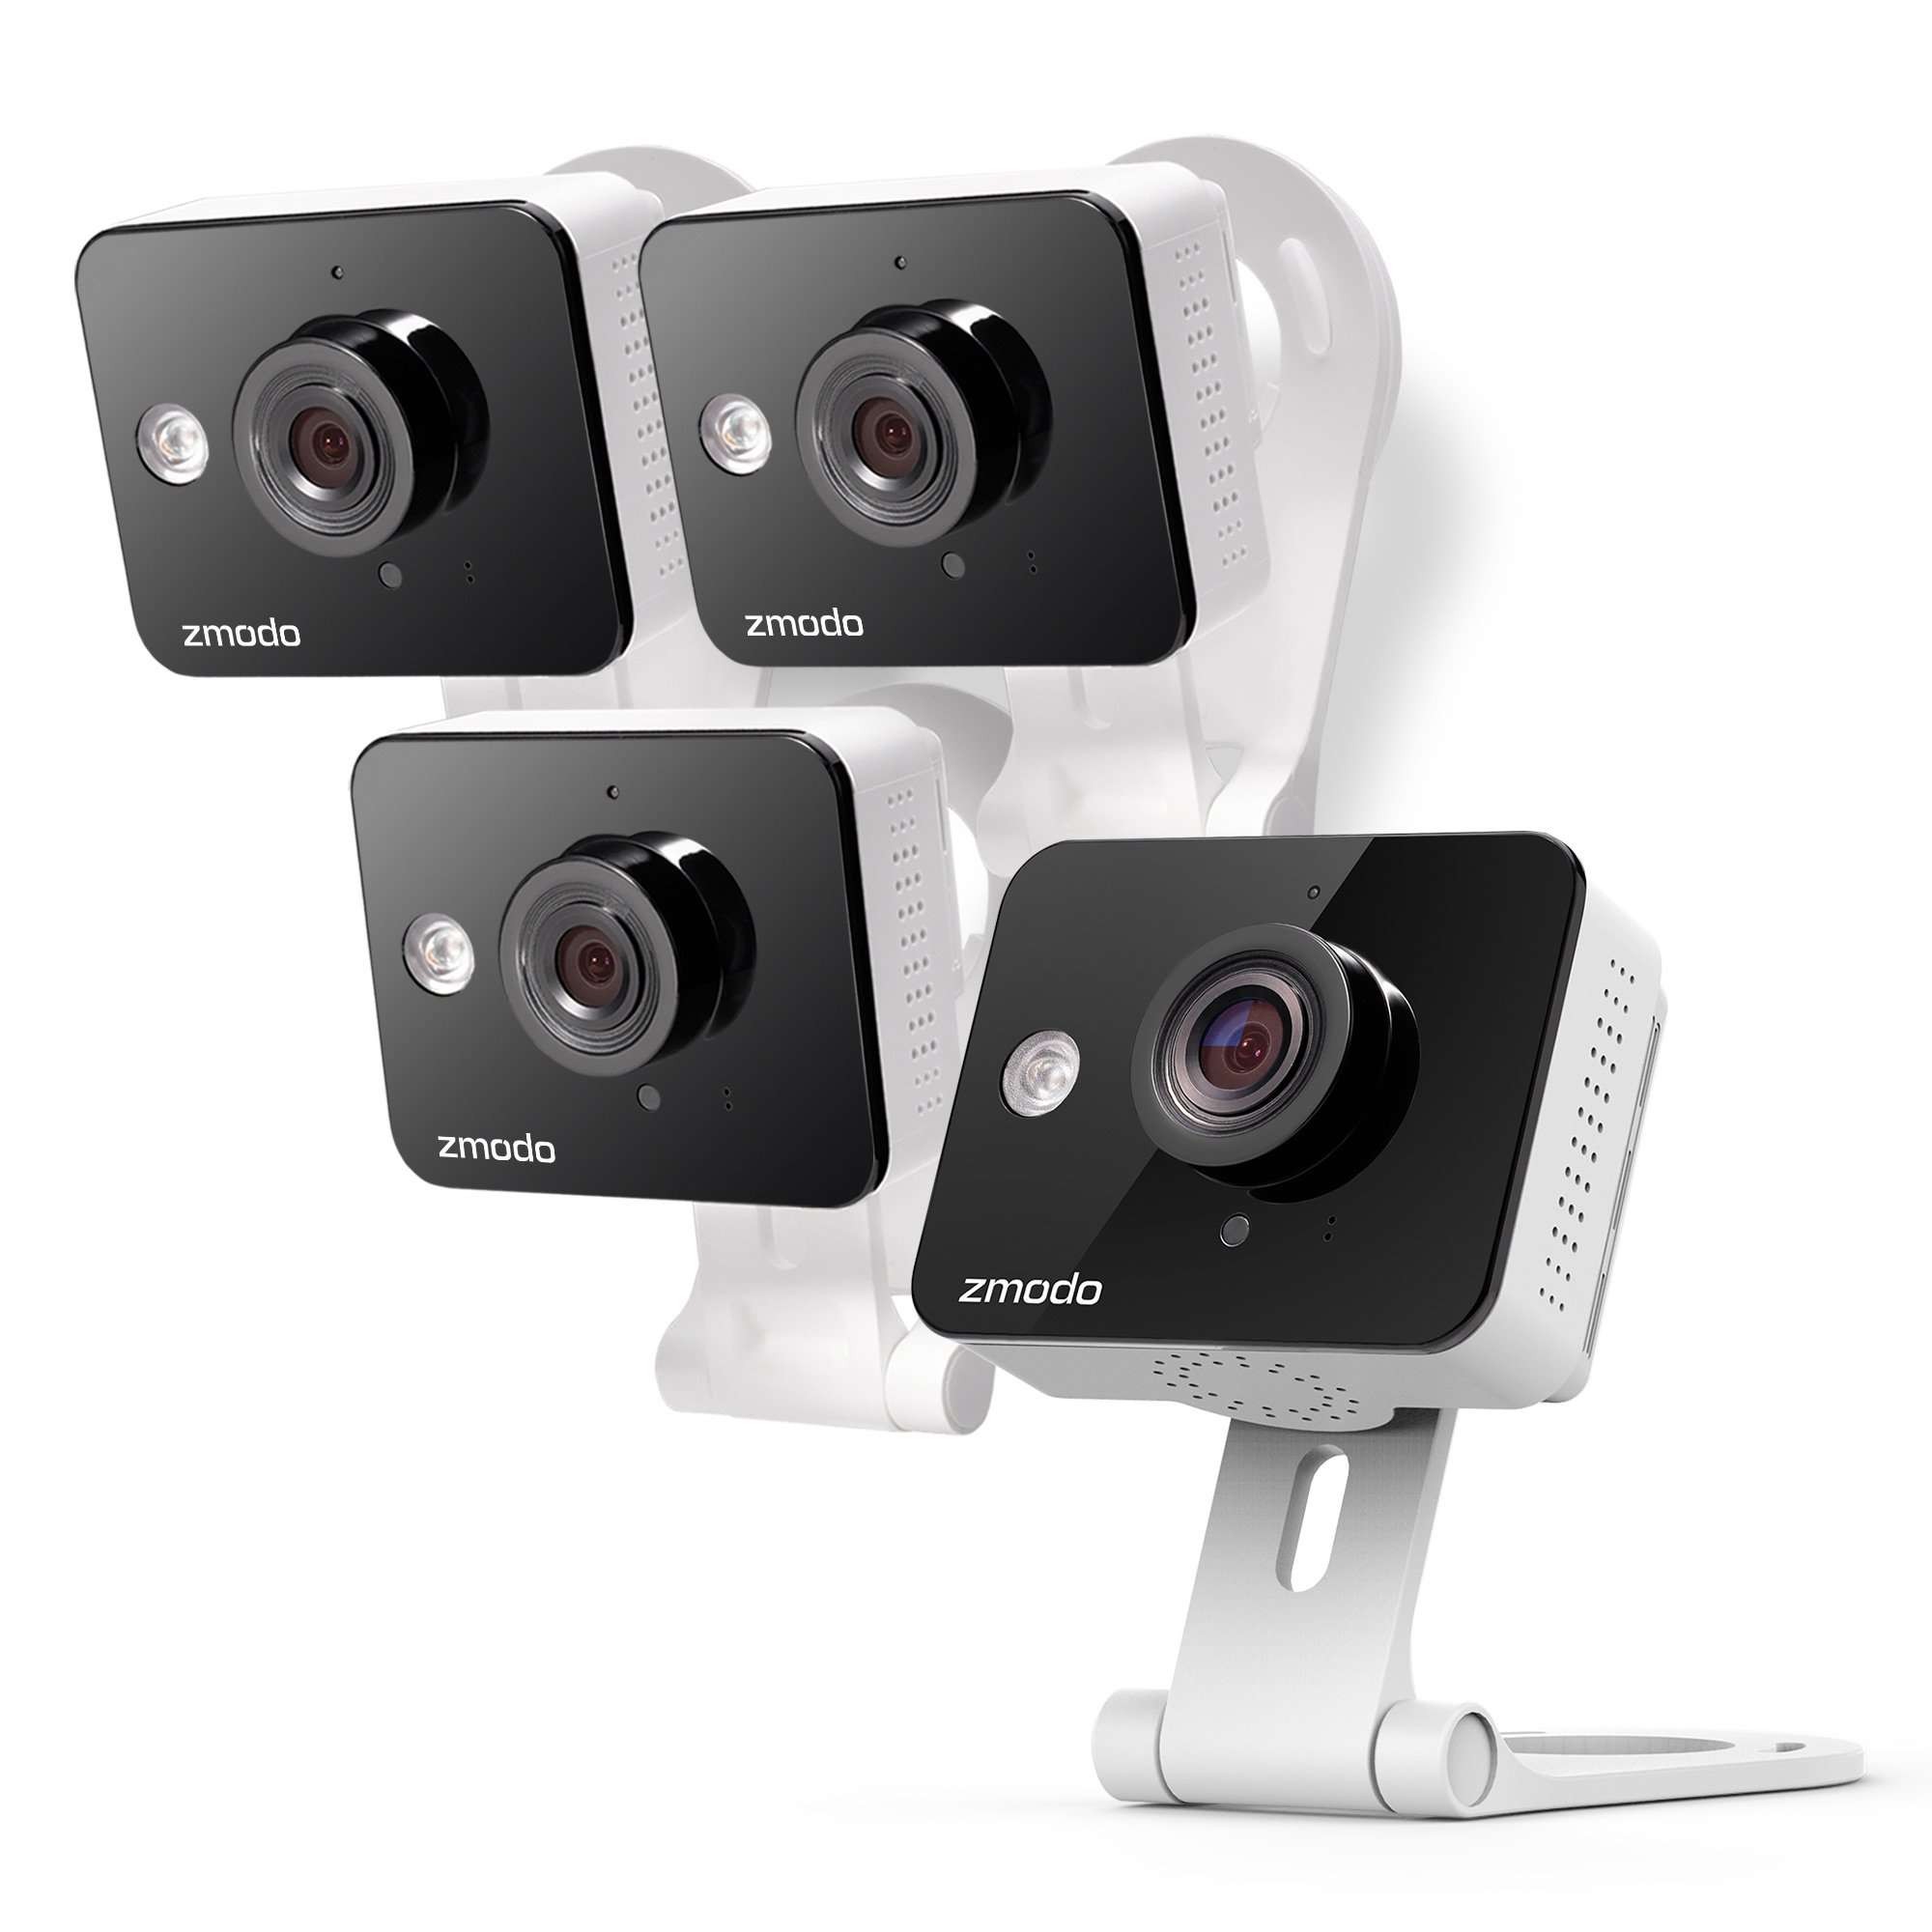 Zmodo Wireless Two-Way Audio HD Home Security Camera (4 Pack) with Night Vision by Zmodo